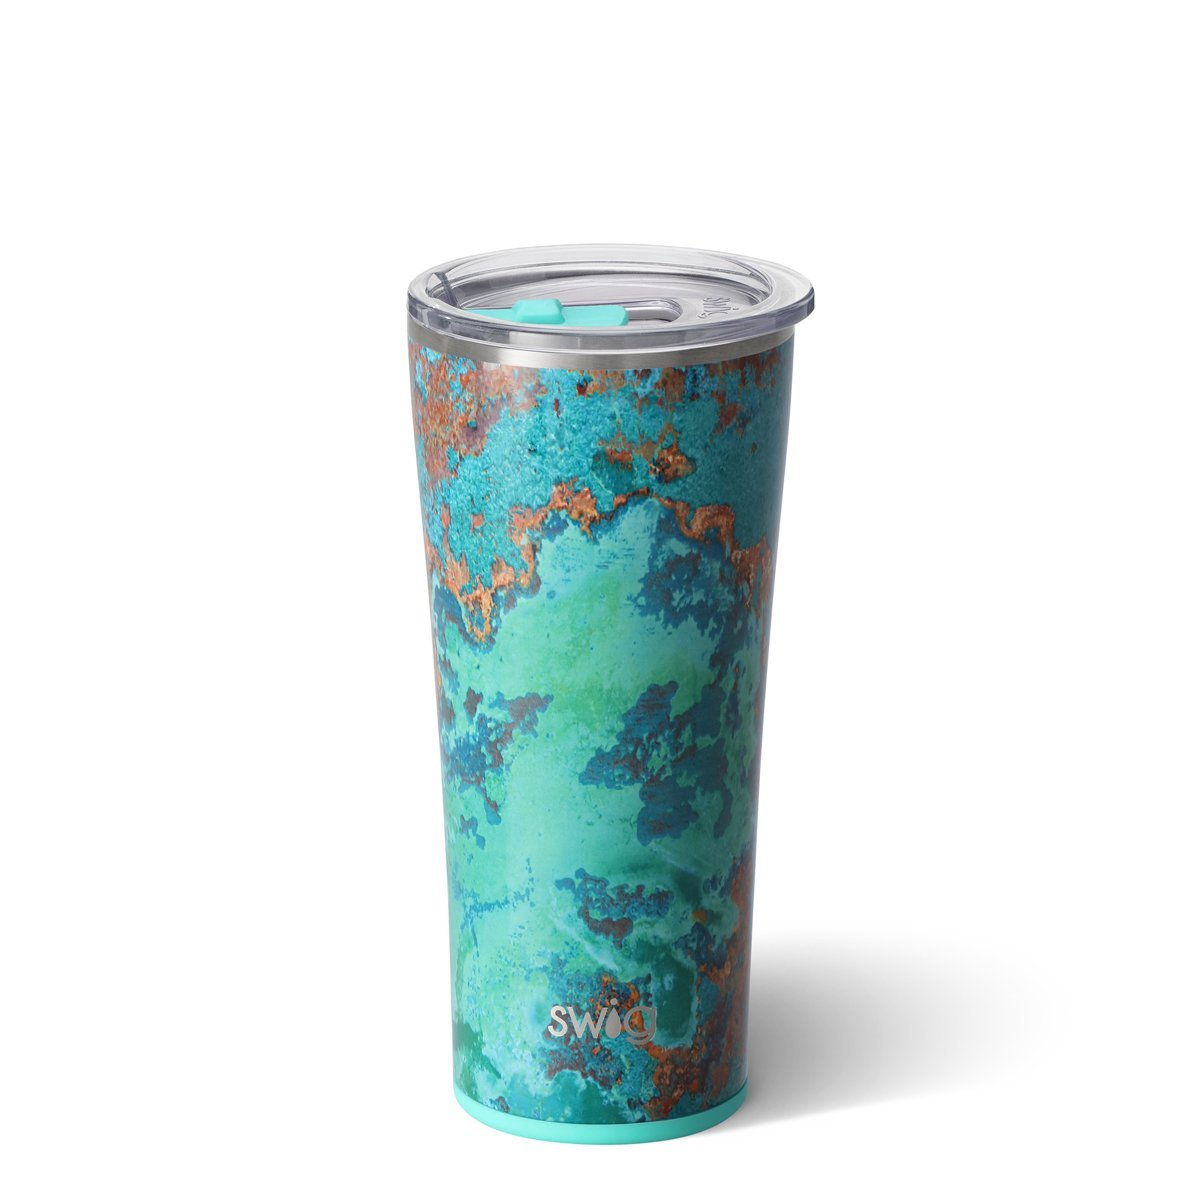 Swig 22 oz Tumbler Copper Patina